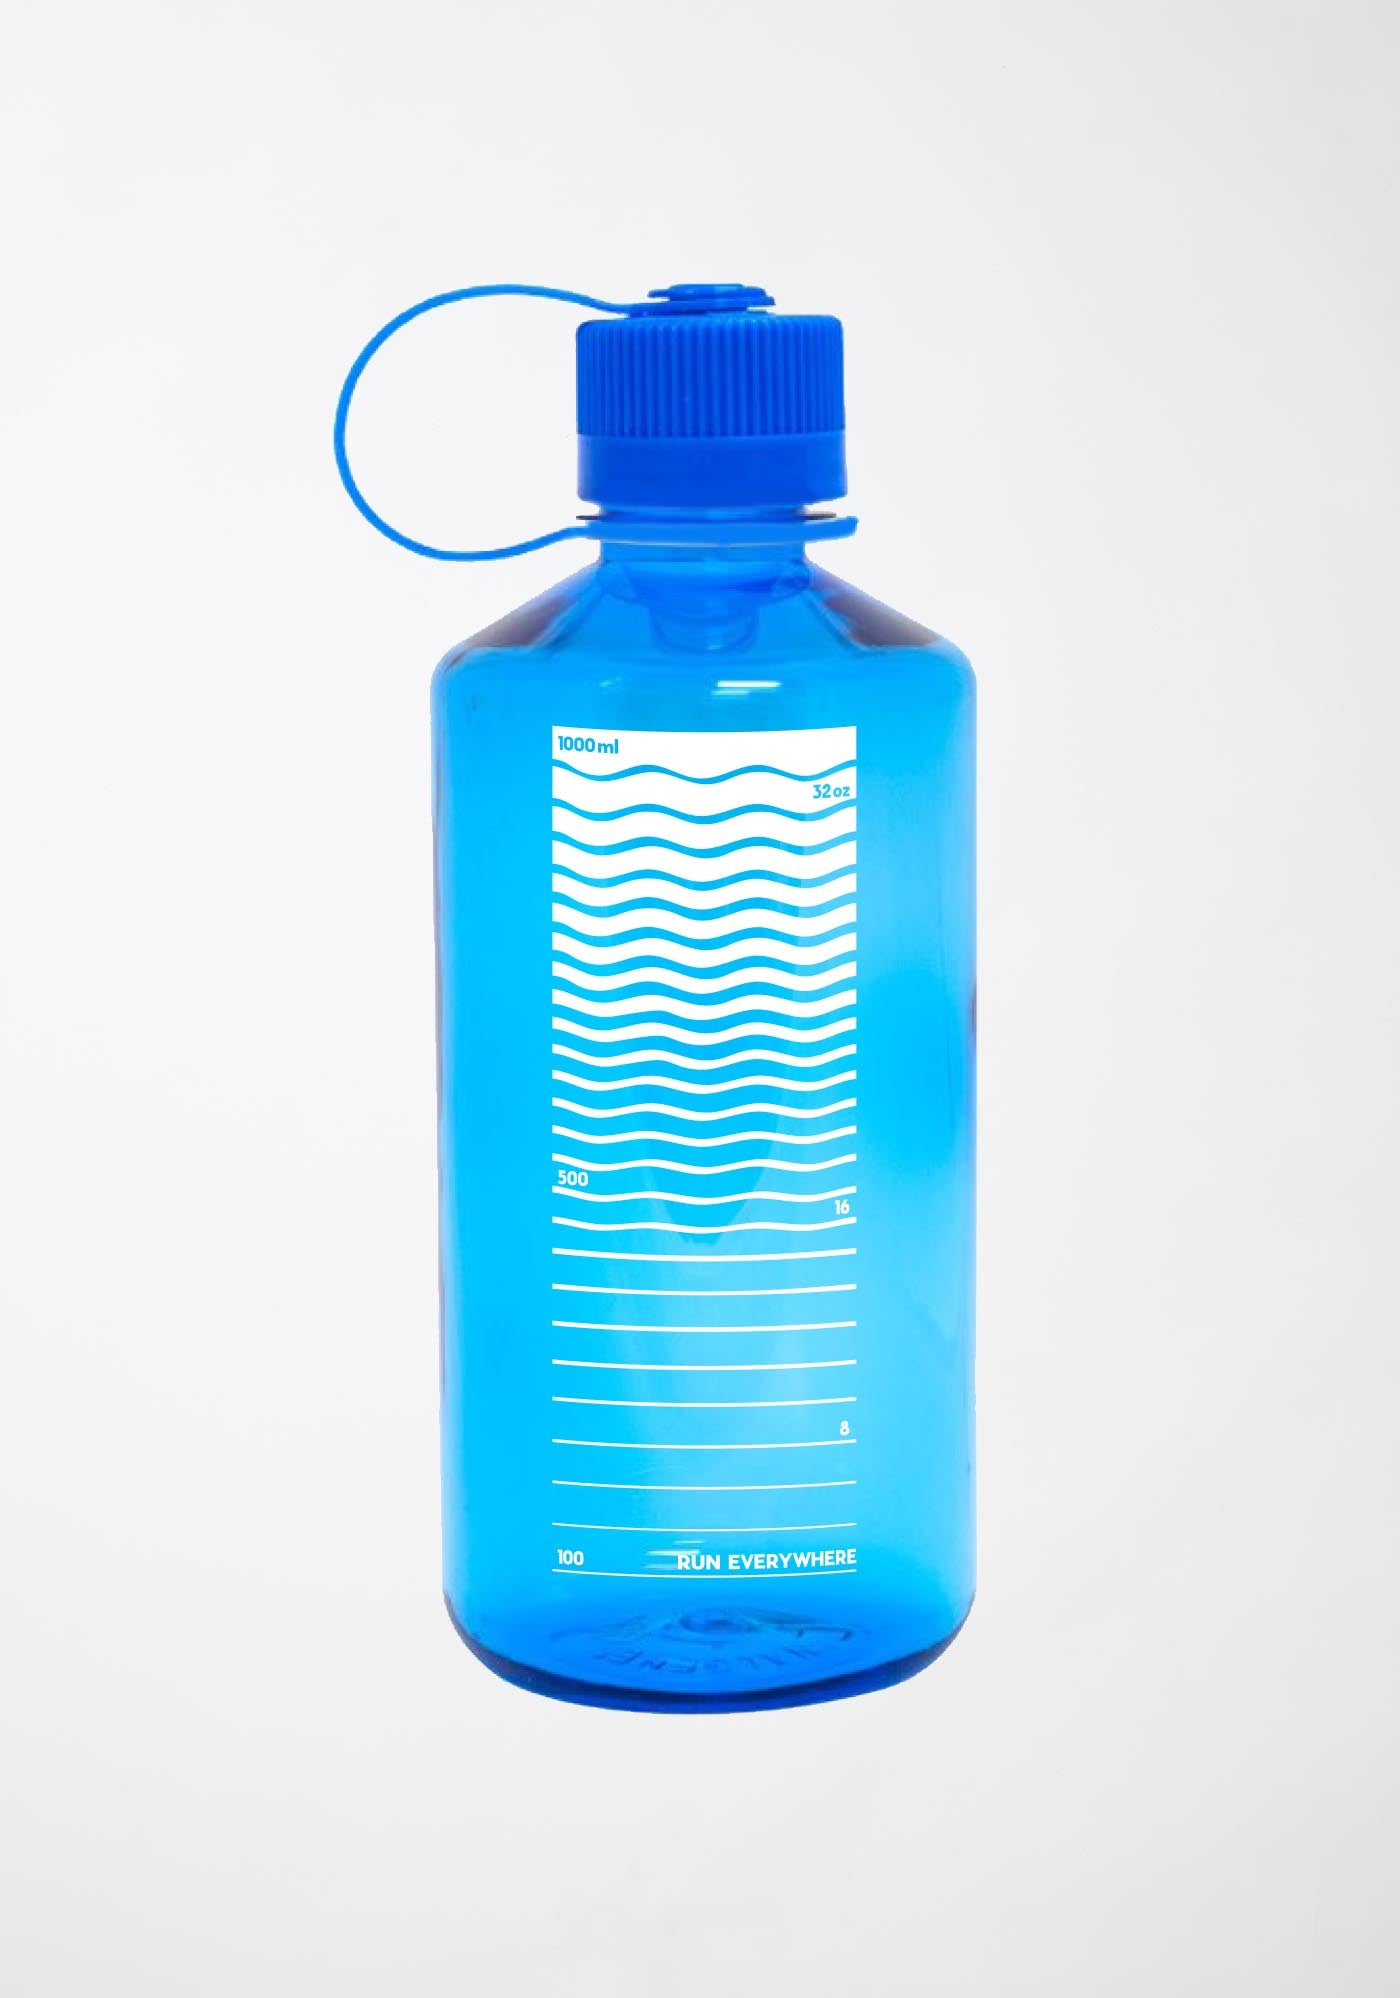 Janji 32oz Water Bottle in Essential Blue